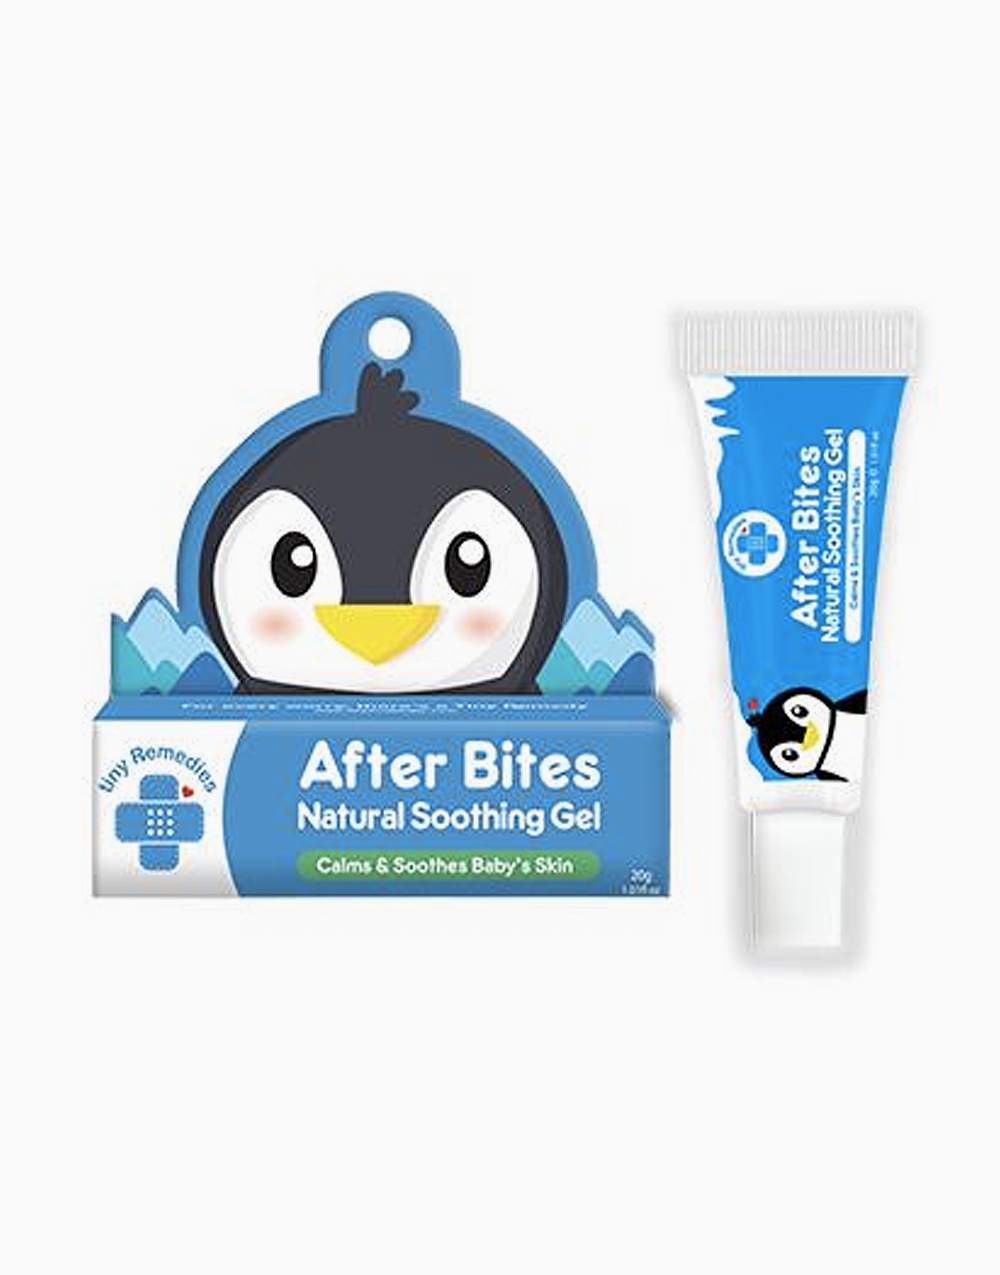 Natural Insect Bite Gel - After Bites! (20g) by Tiny Buds